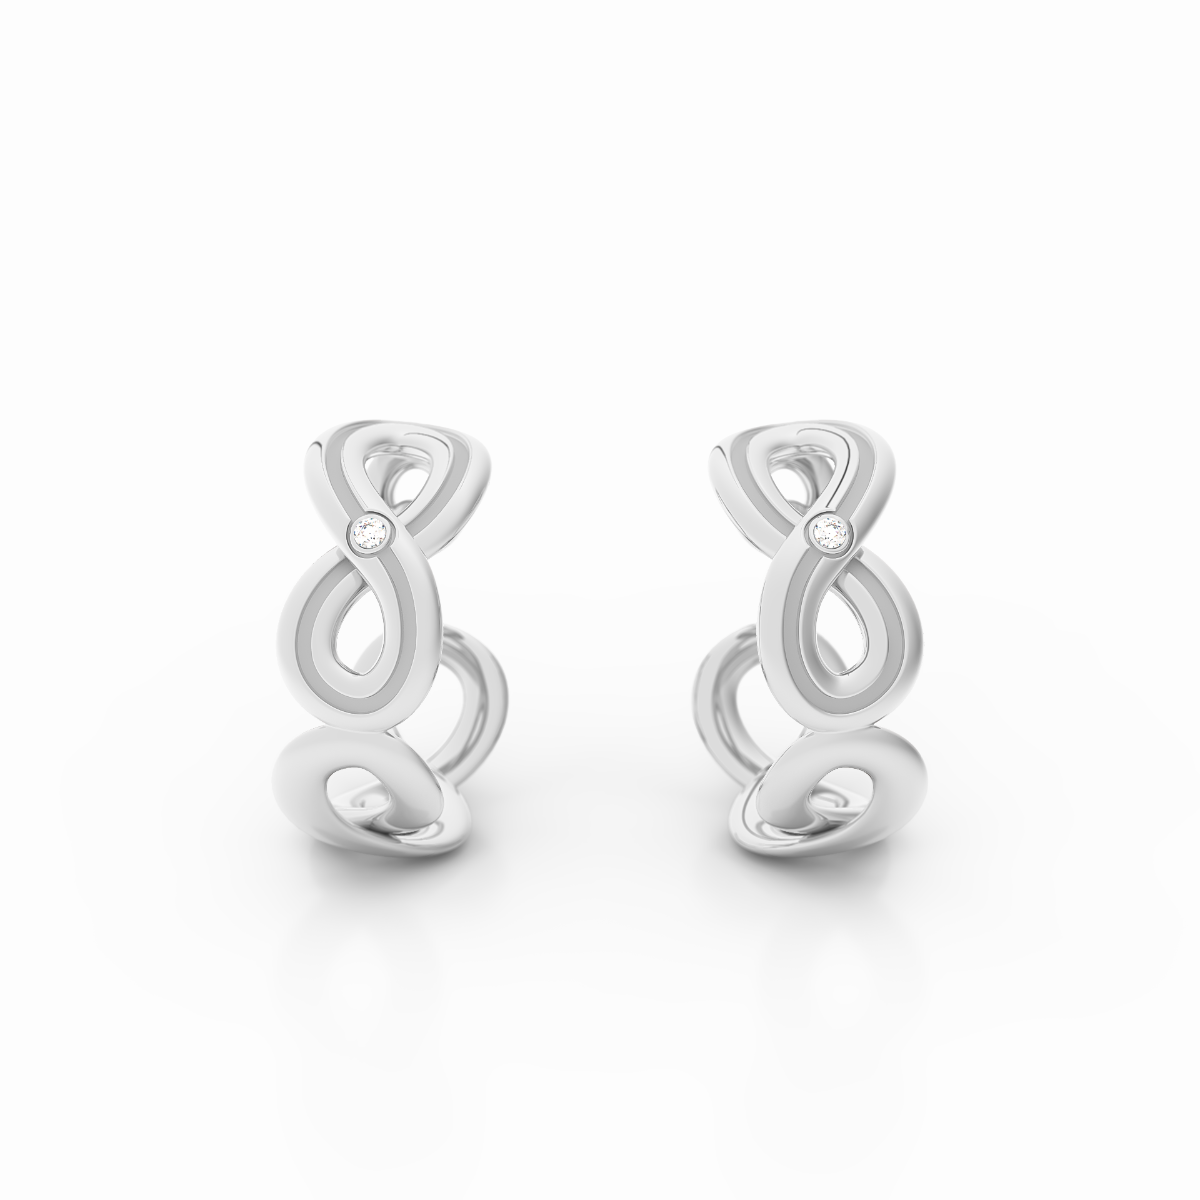 Infinity Collection - Lined Infinity Earrings in Platinum